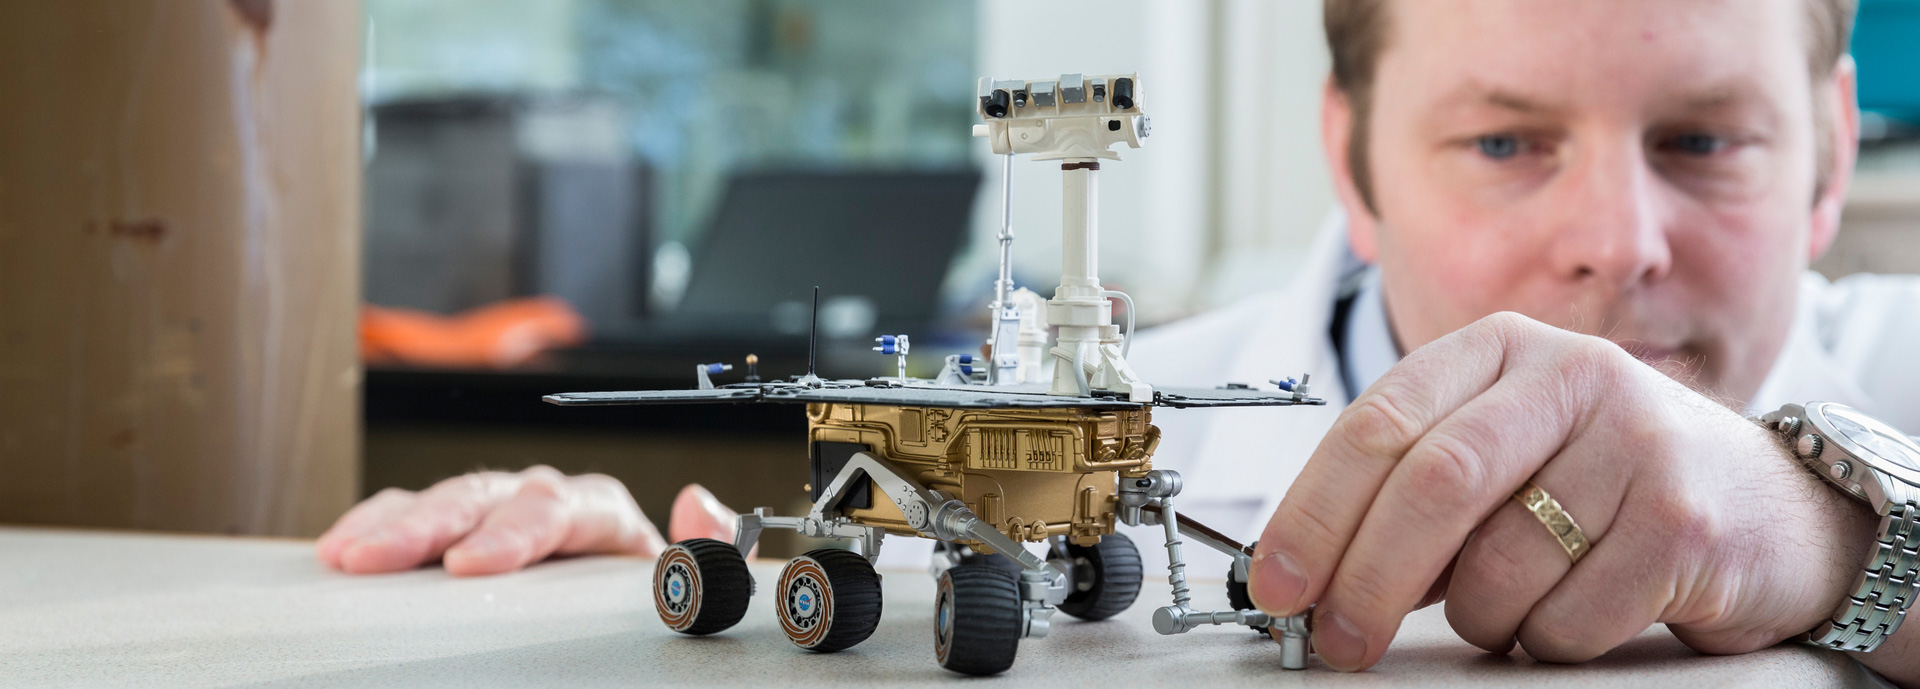 Man with model of Mars rover